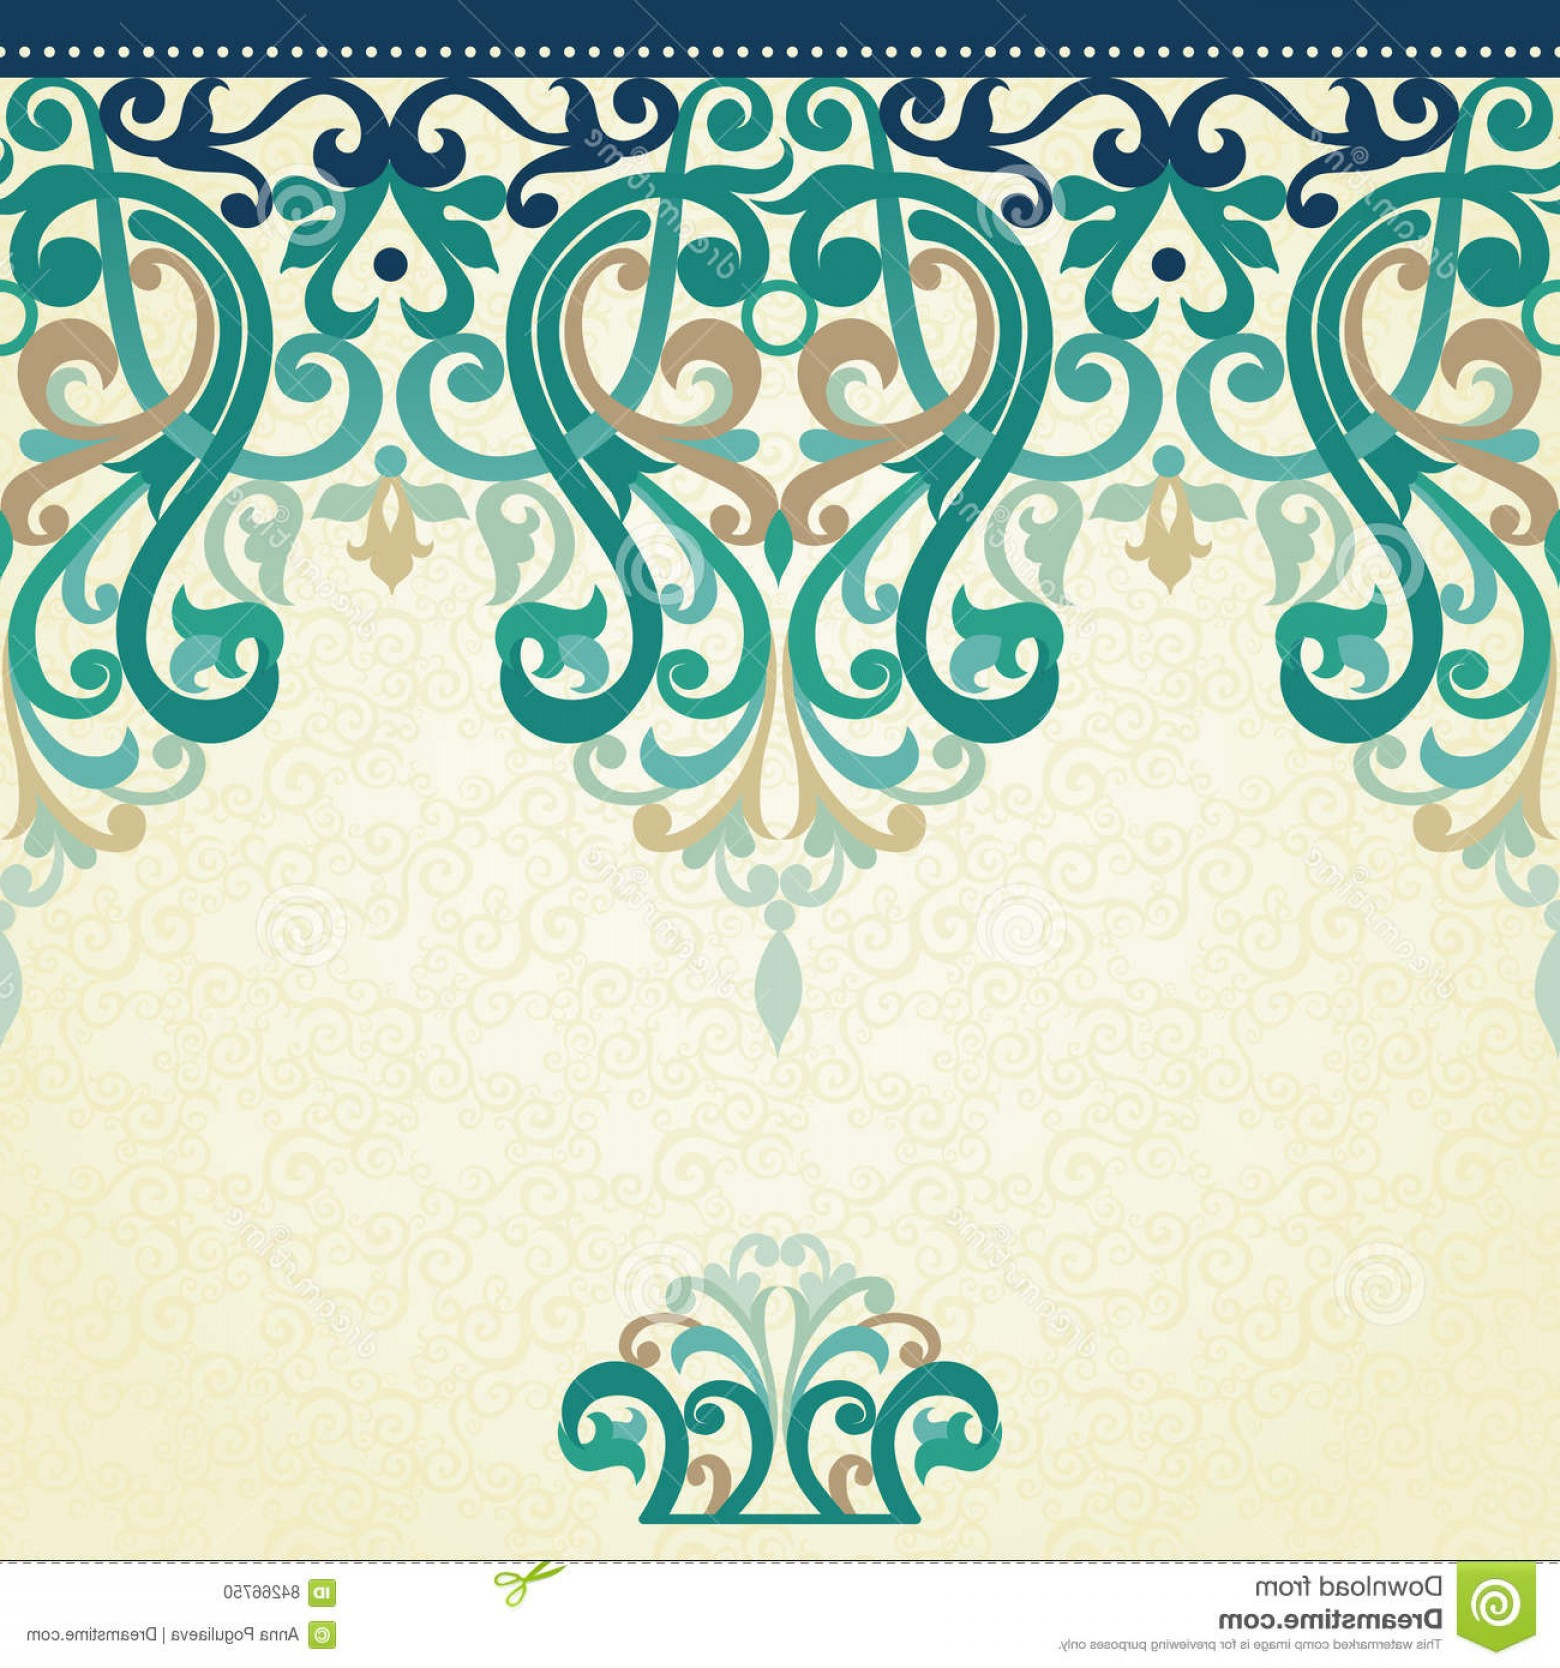 Aqua Victorian Vectors: Stock Illustration Decorative Vector Seamless Border Victorian Style Colorful Element Design Place Text Ornamental Lace Pattern Image